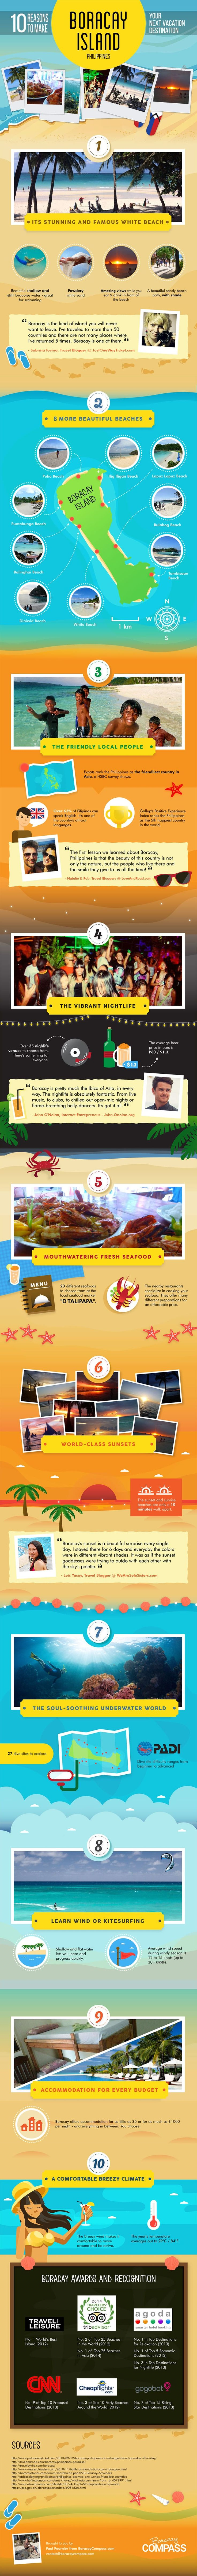 10 Reasons To Make Boracay Island Your Next Vacation Destination #Infographic #Philippine #Travel